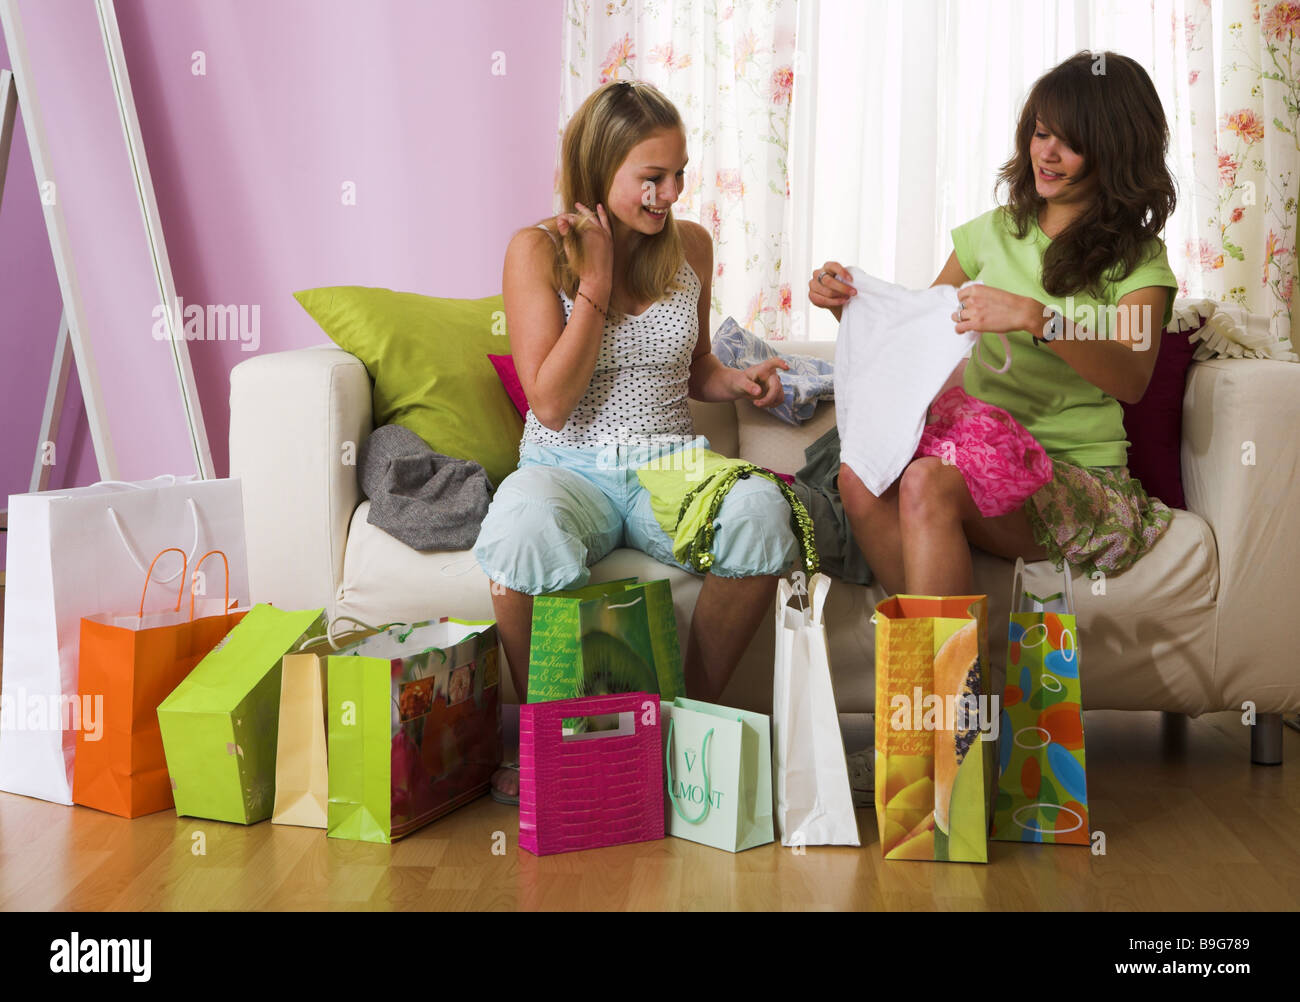 girl  sofa  purchase-bags  sit squeals  garments  views  cheerfully  series  people  teenagers  friends  two  friendship - Stock Image